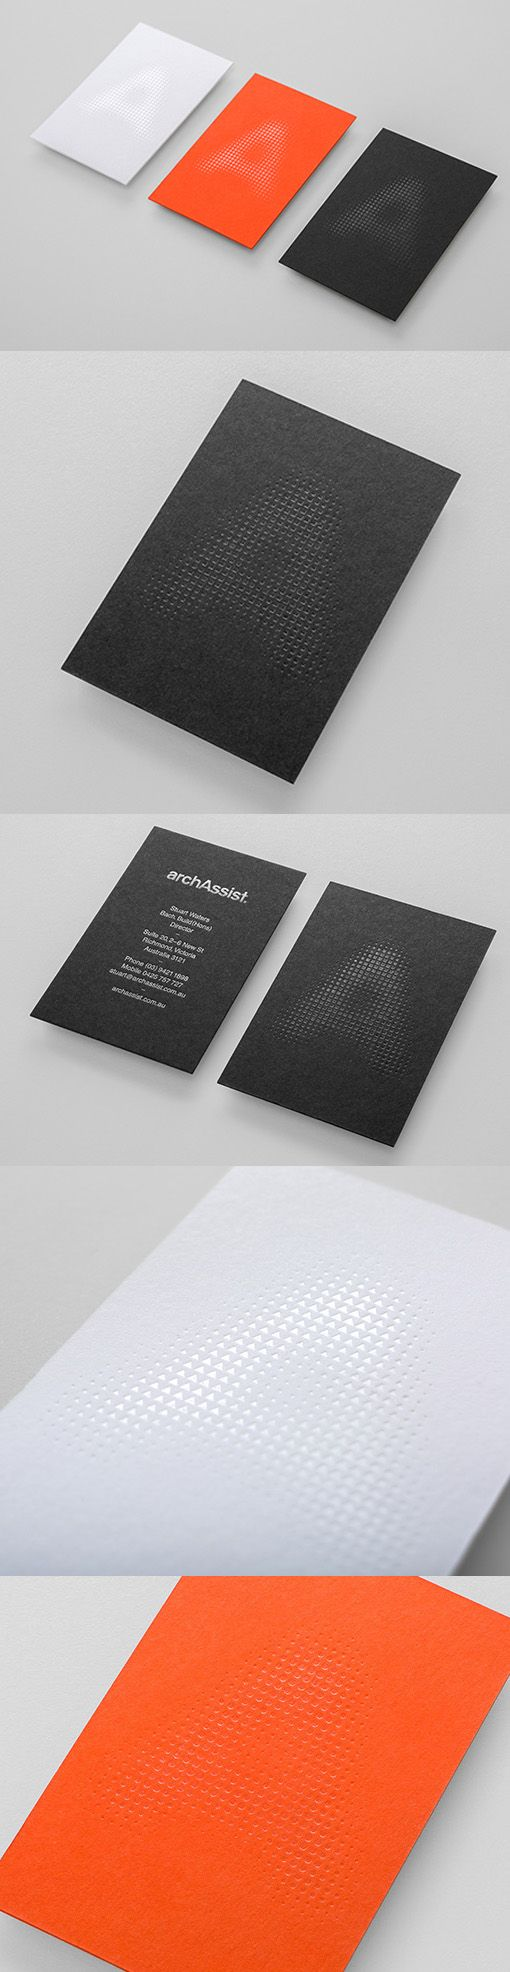 Best 25 architecture business cards ideas on pinterest business subtle and clever use of texture on block colour business cards for an architecture firm magicingreecefo Images